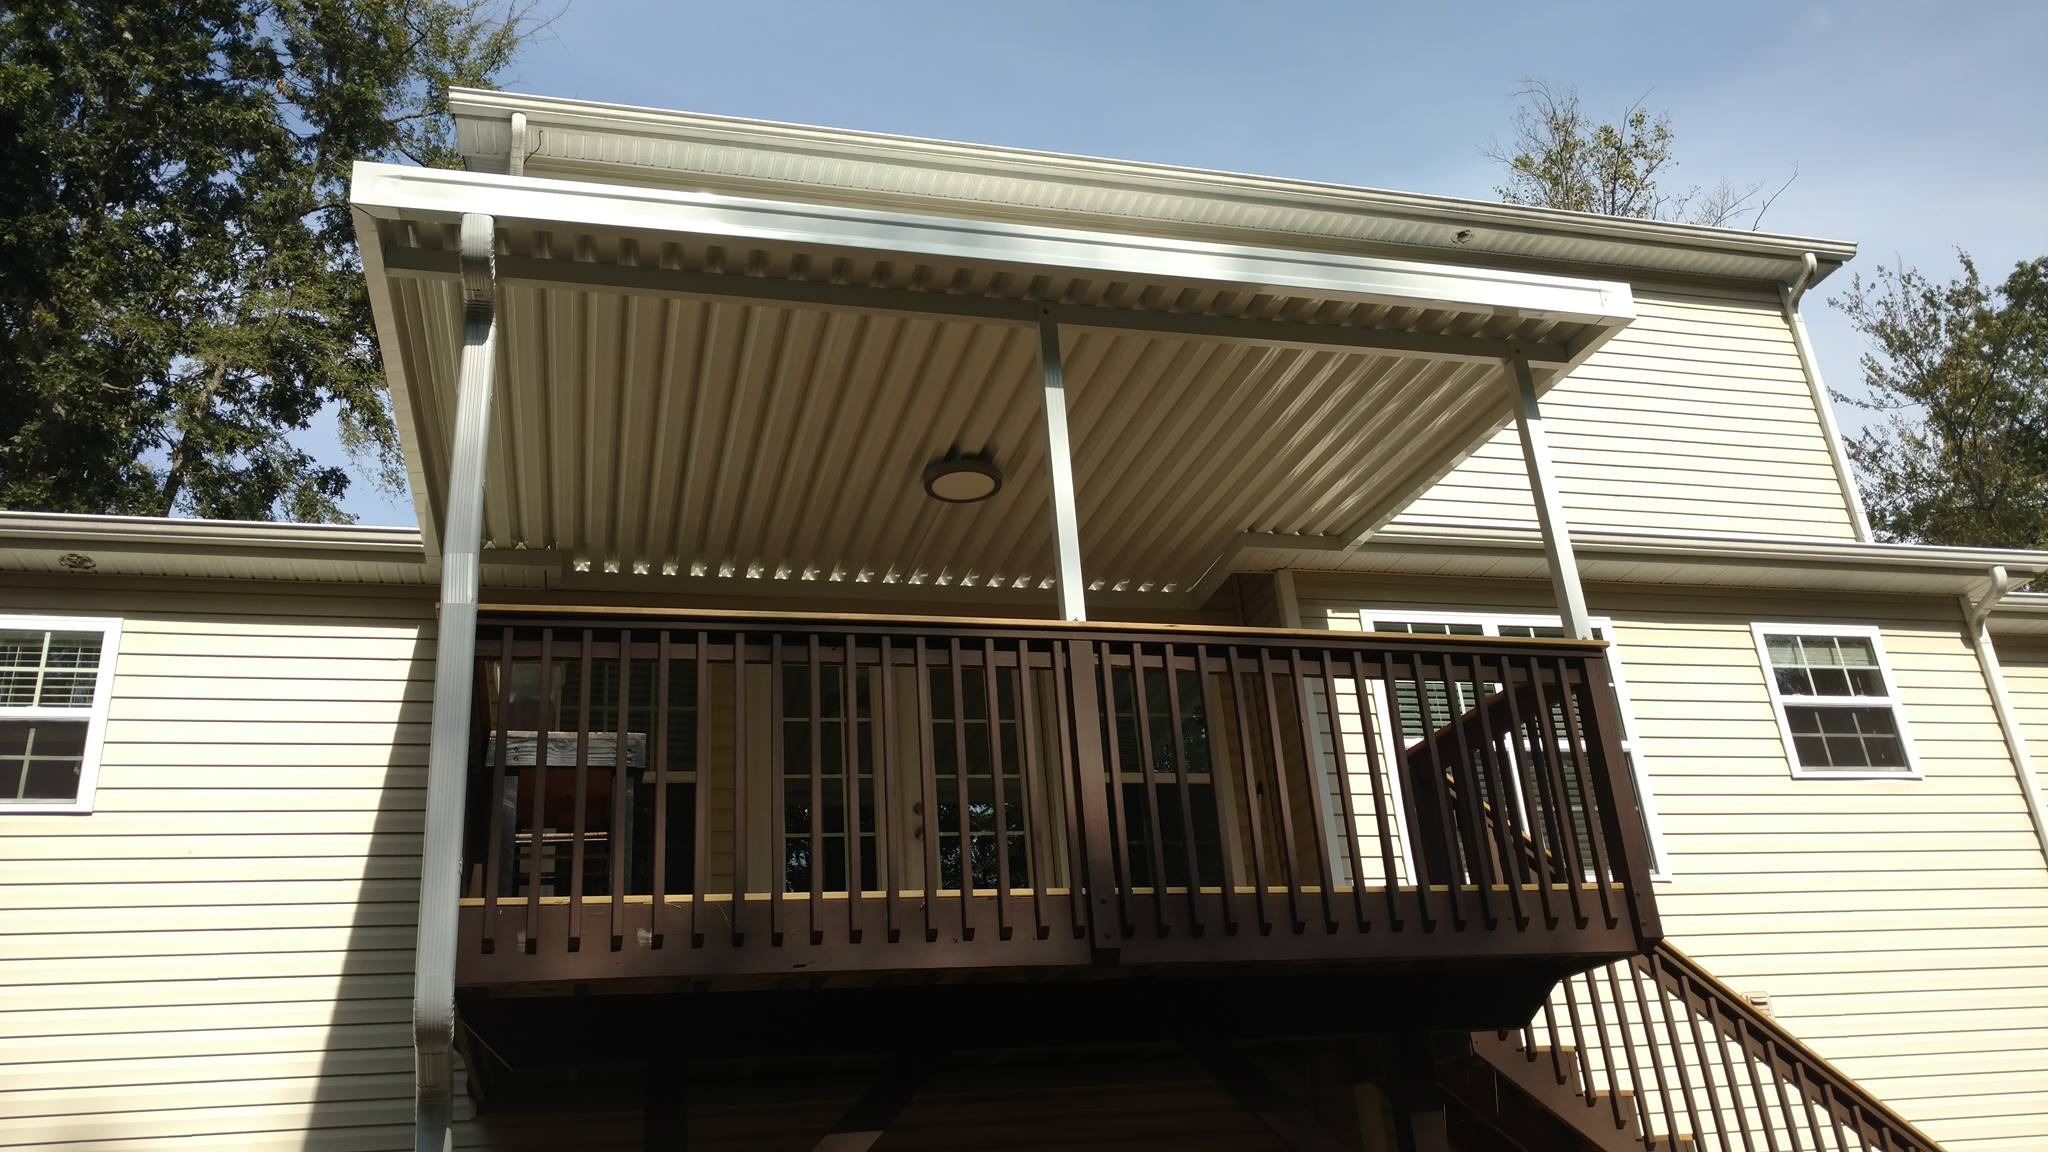 awnings your bonnieberk look awning stunning com building with steps making deck